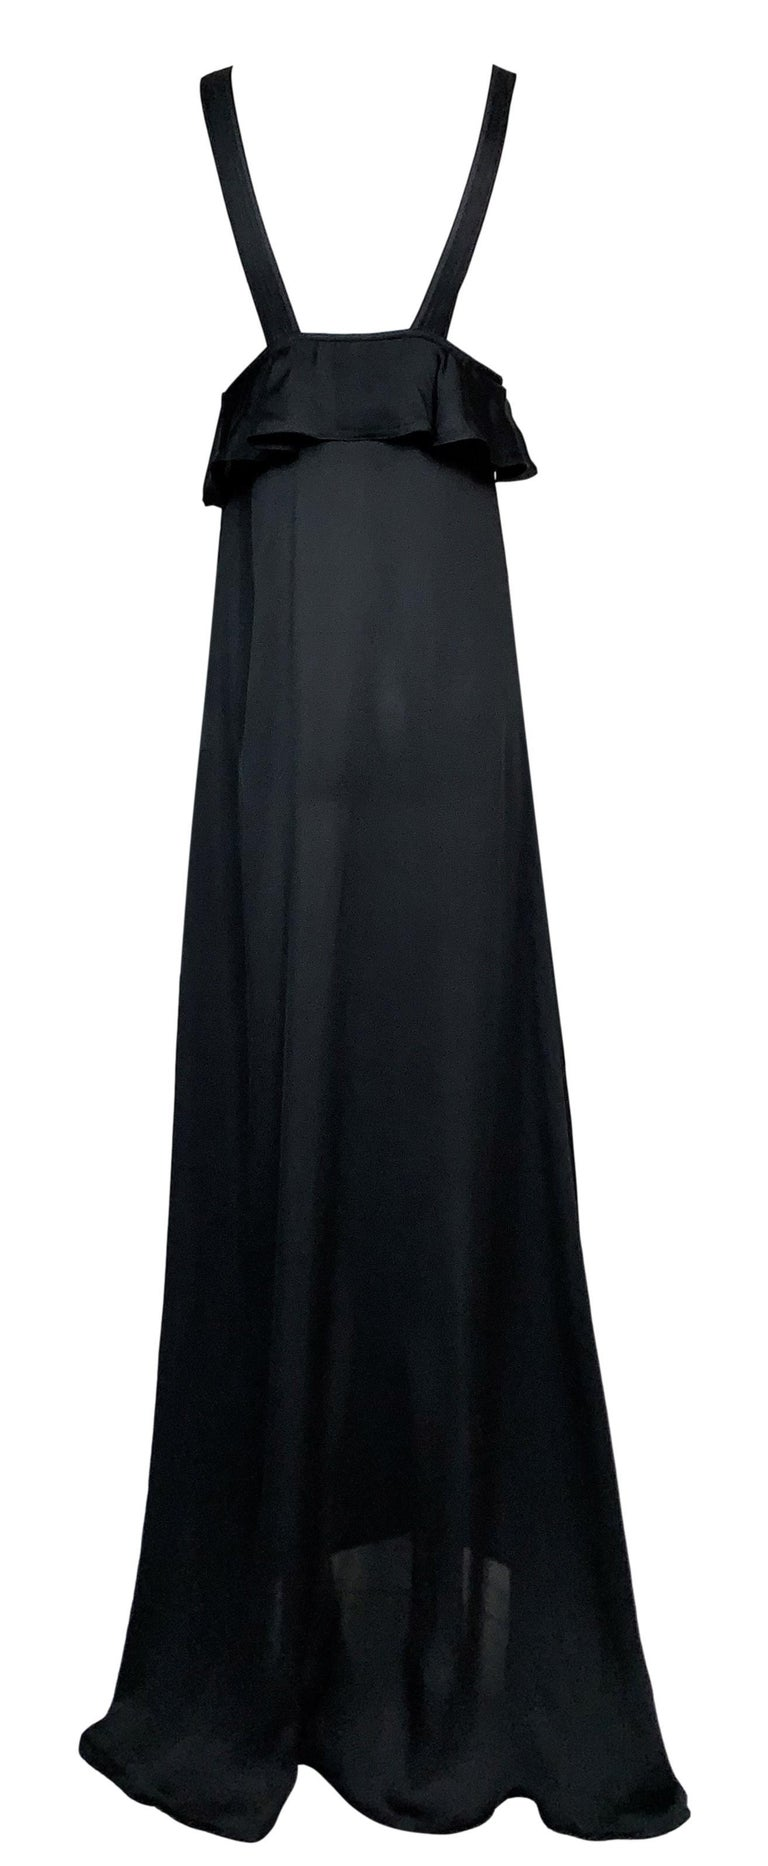 Women's F/W 2003 Yves Saint Laurent Tom Ford Runway Sheer Black Silk Plunging Gown Dress For Sale